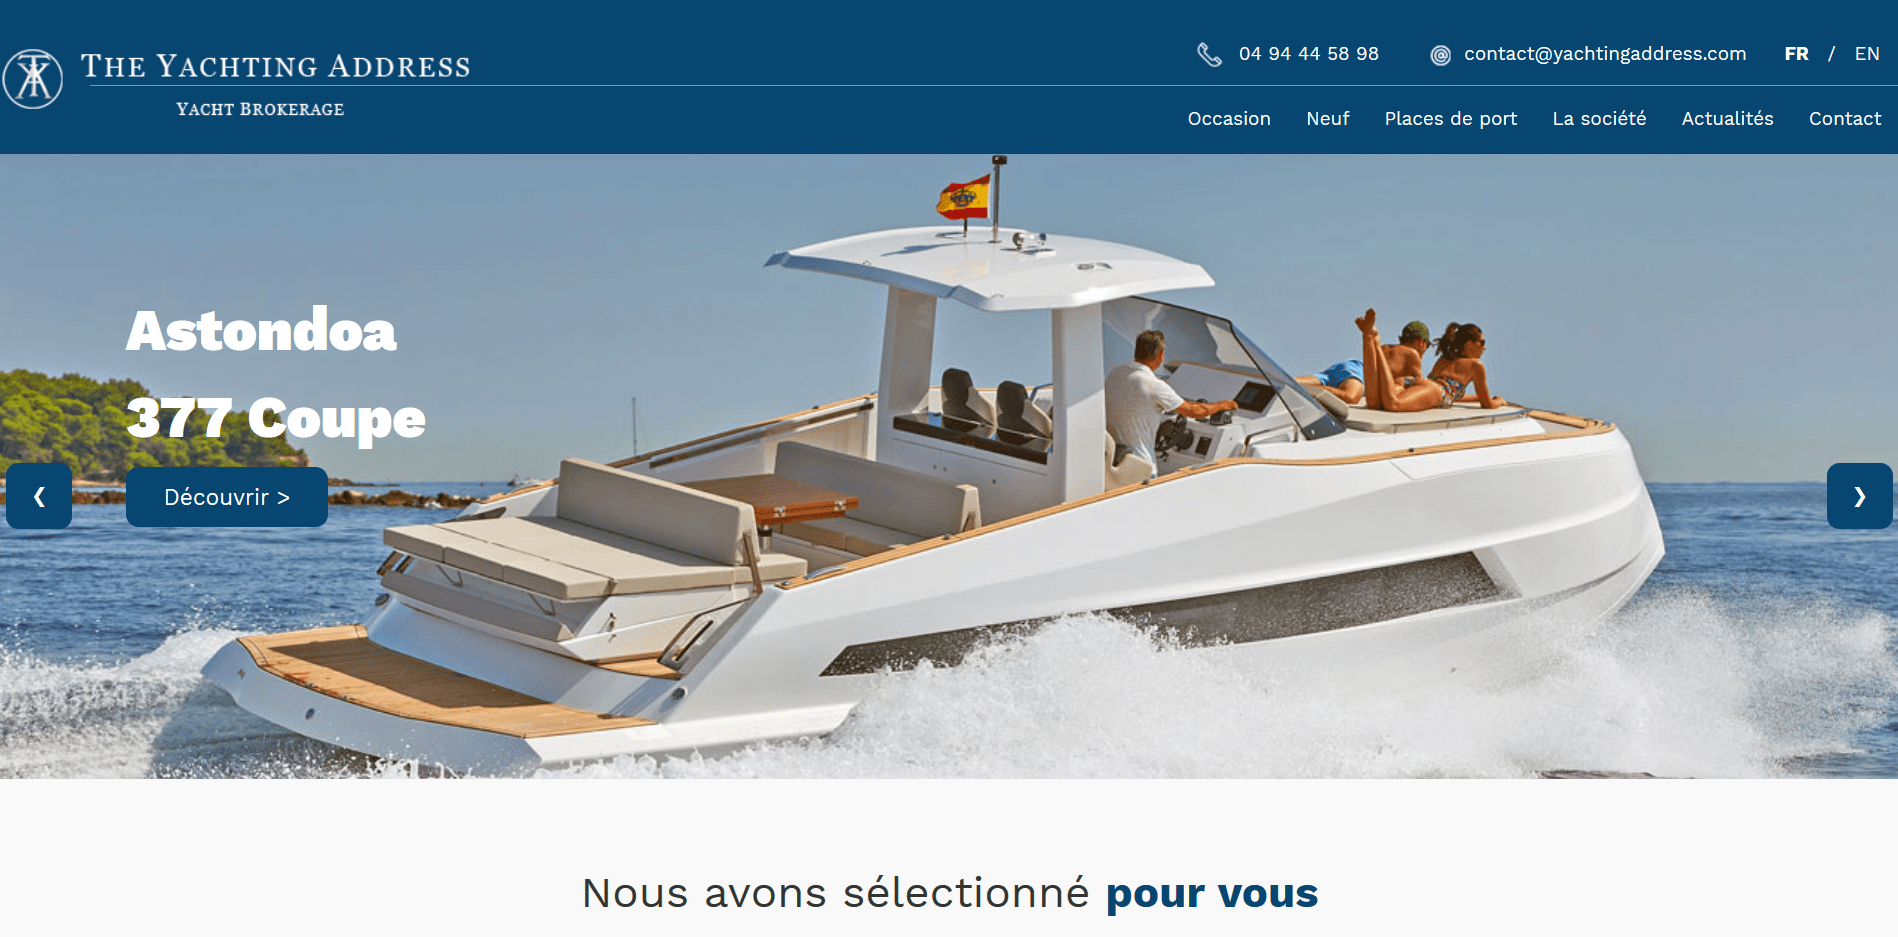 The Yachting Address- Logiciel Bateau-min.png